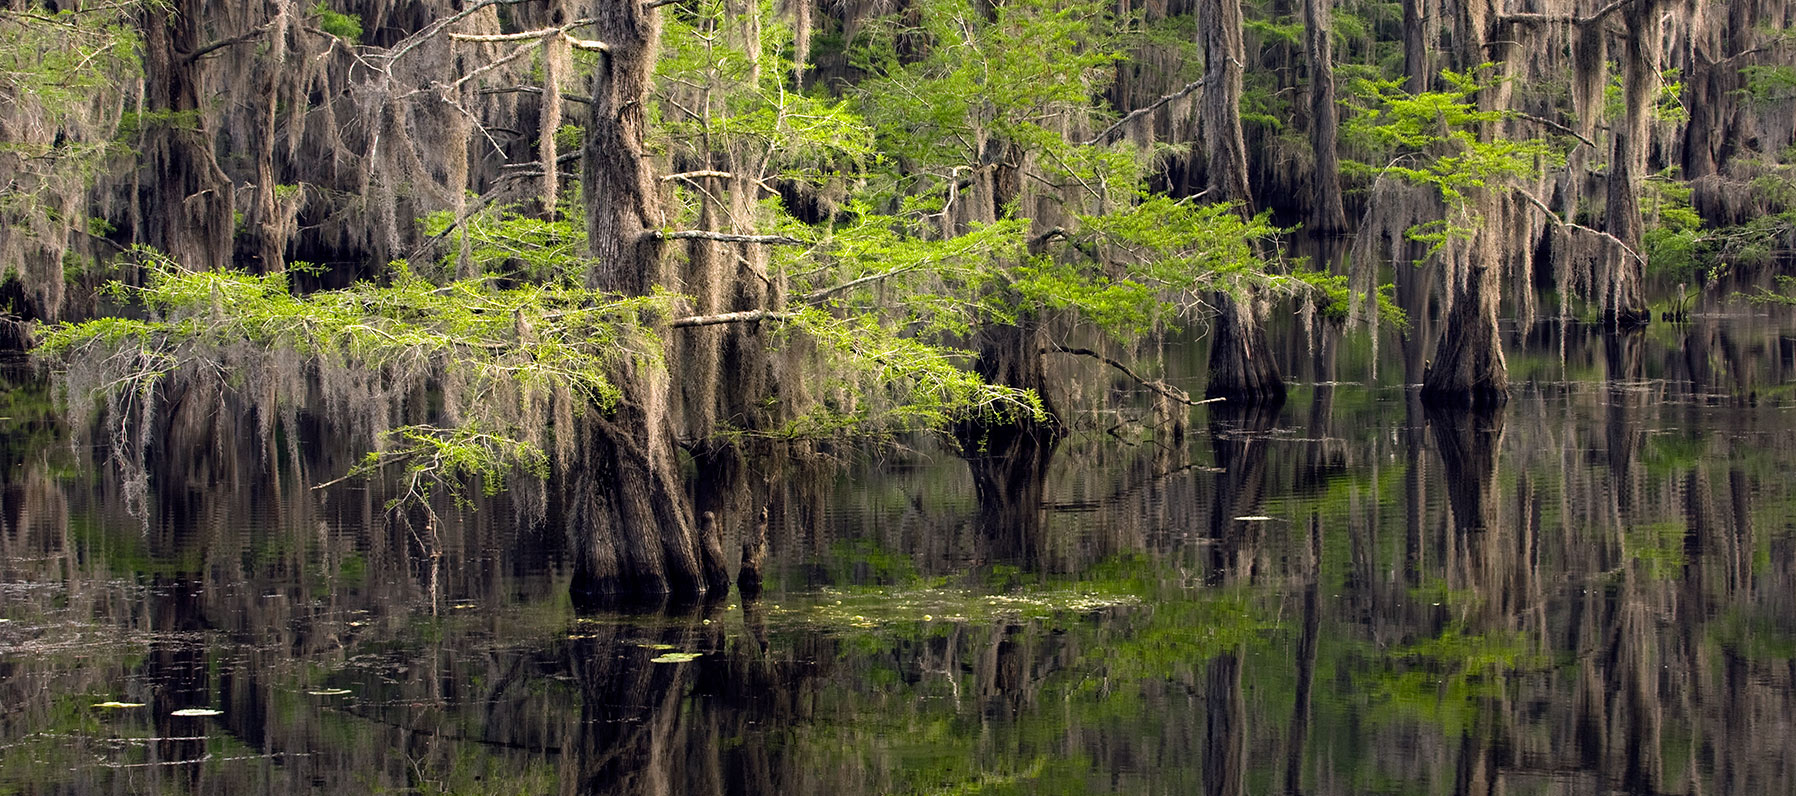 A maze of bayous thick with ancient bald cypress trees and more than 70 species of fish. There's plenty to lure you to the only natural lake in Texas.